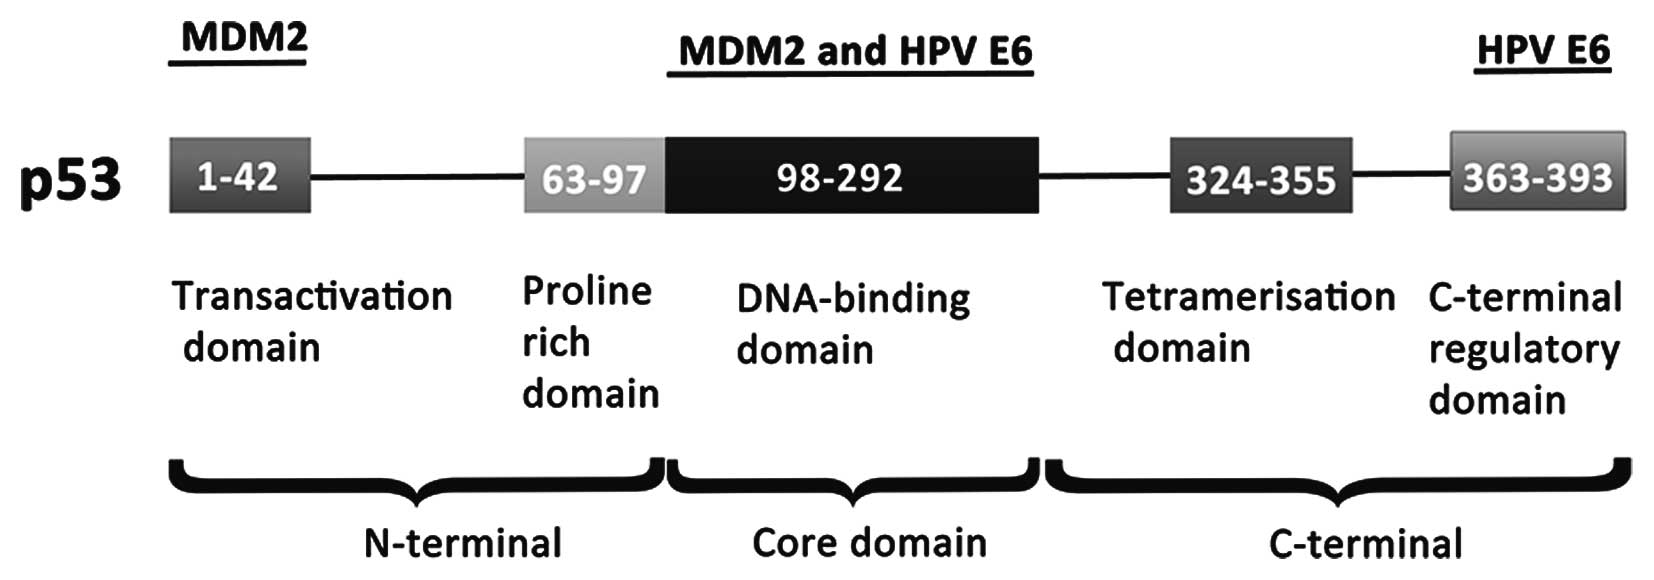 hpv oncogene positif cancer platyhelminthes ppt